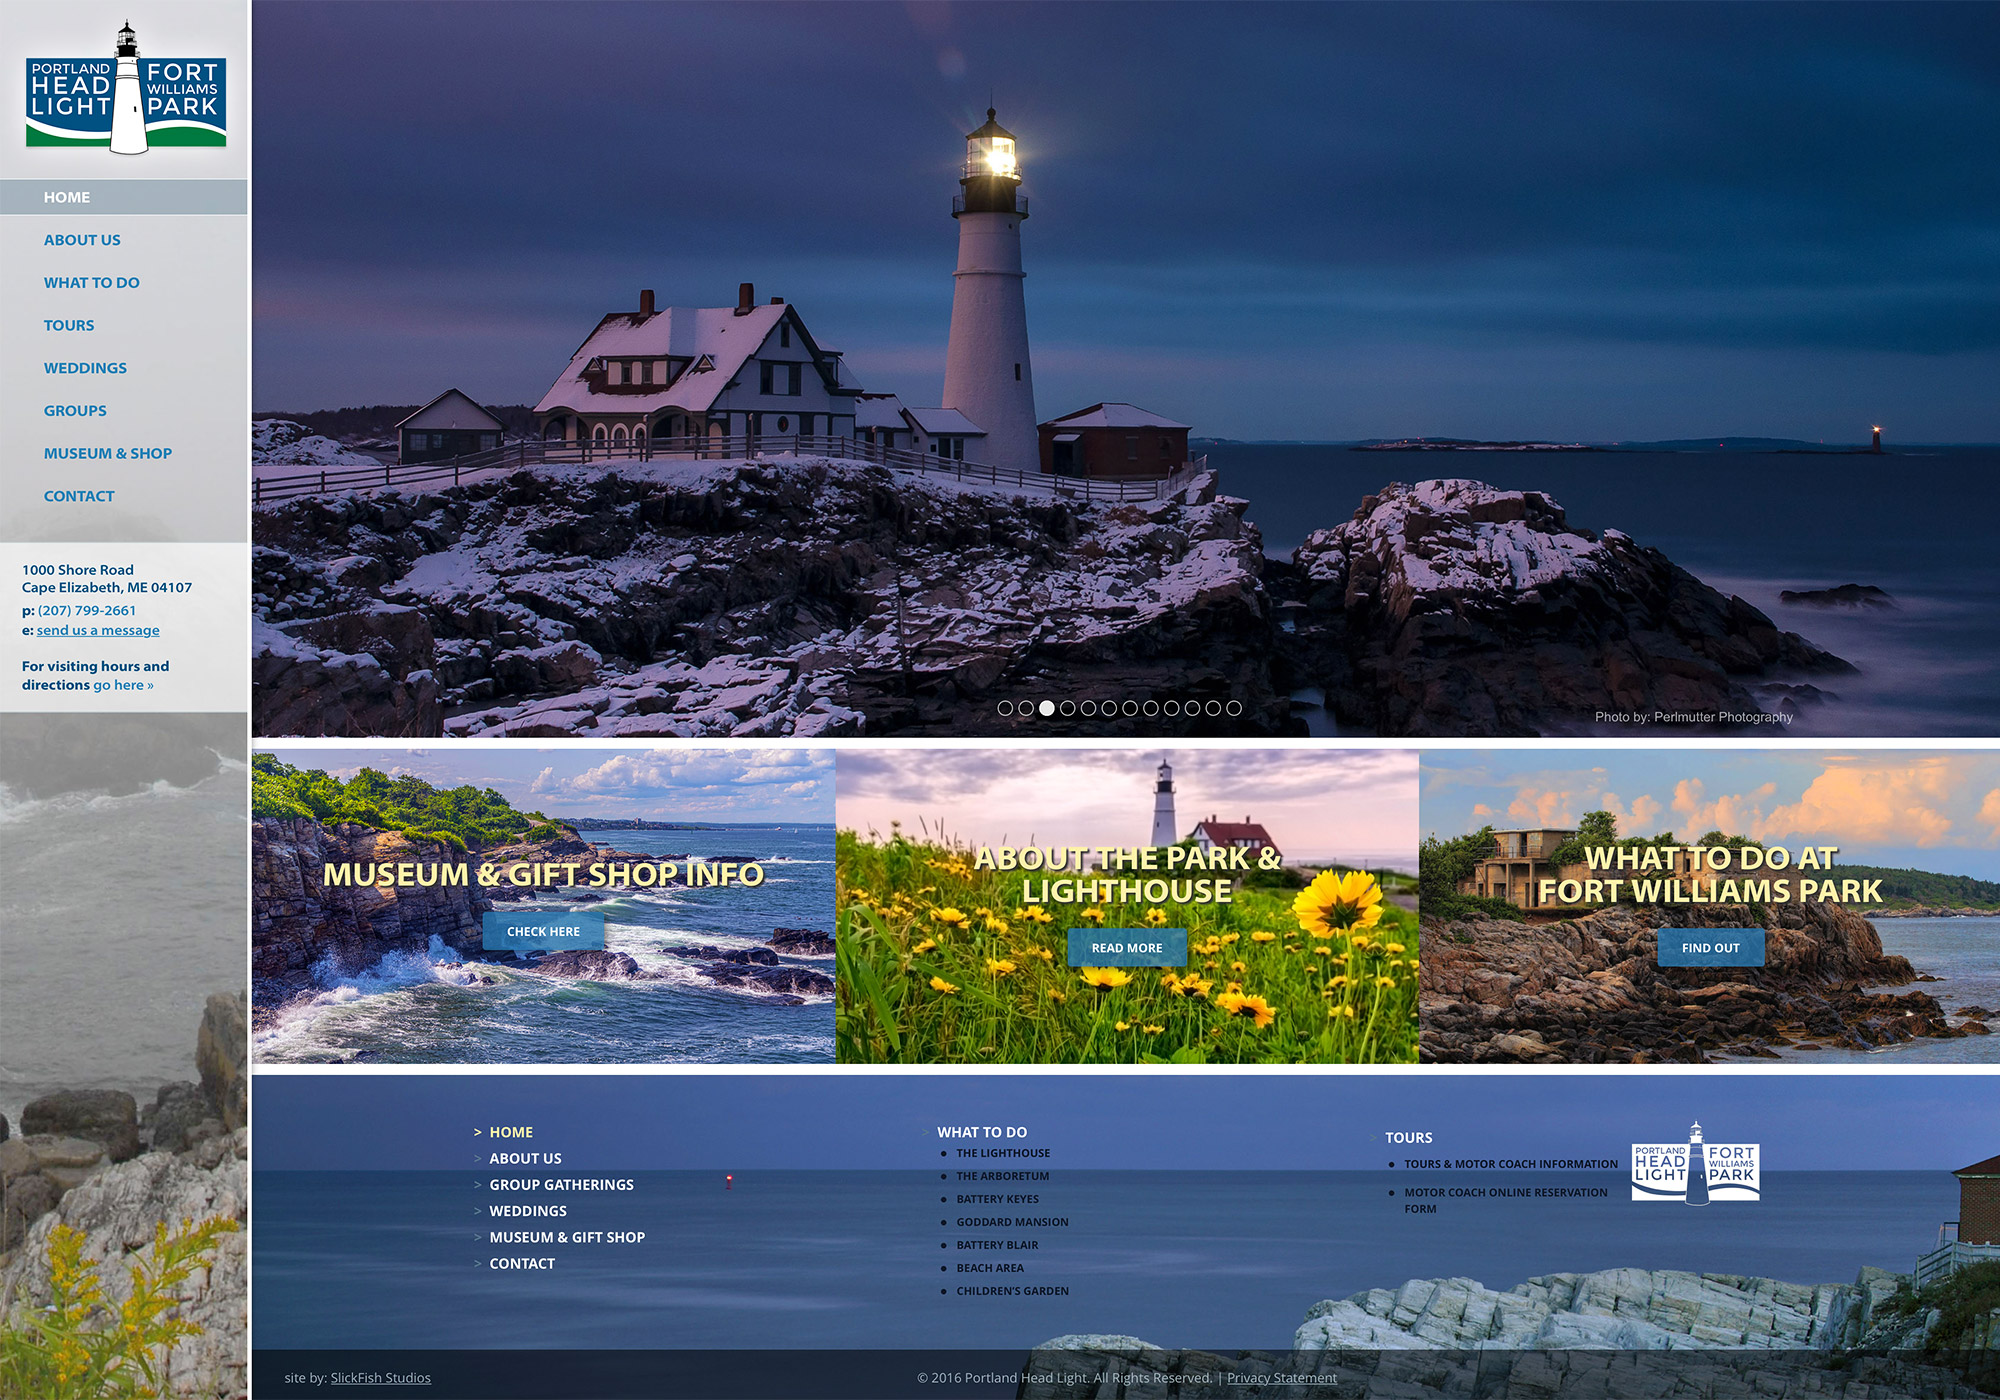 A screenshot of the homepage from the new SlickFish Studios designed website for the Portland Head Light and Fort Williams Park.